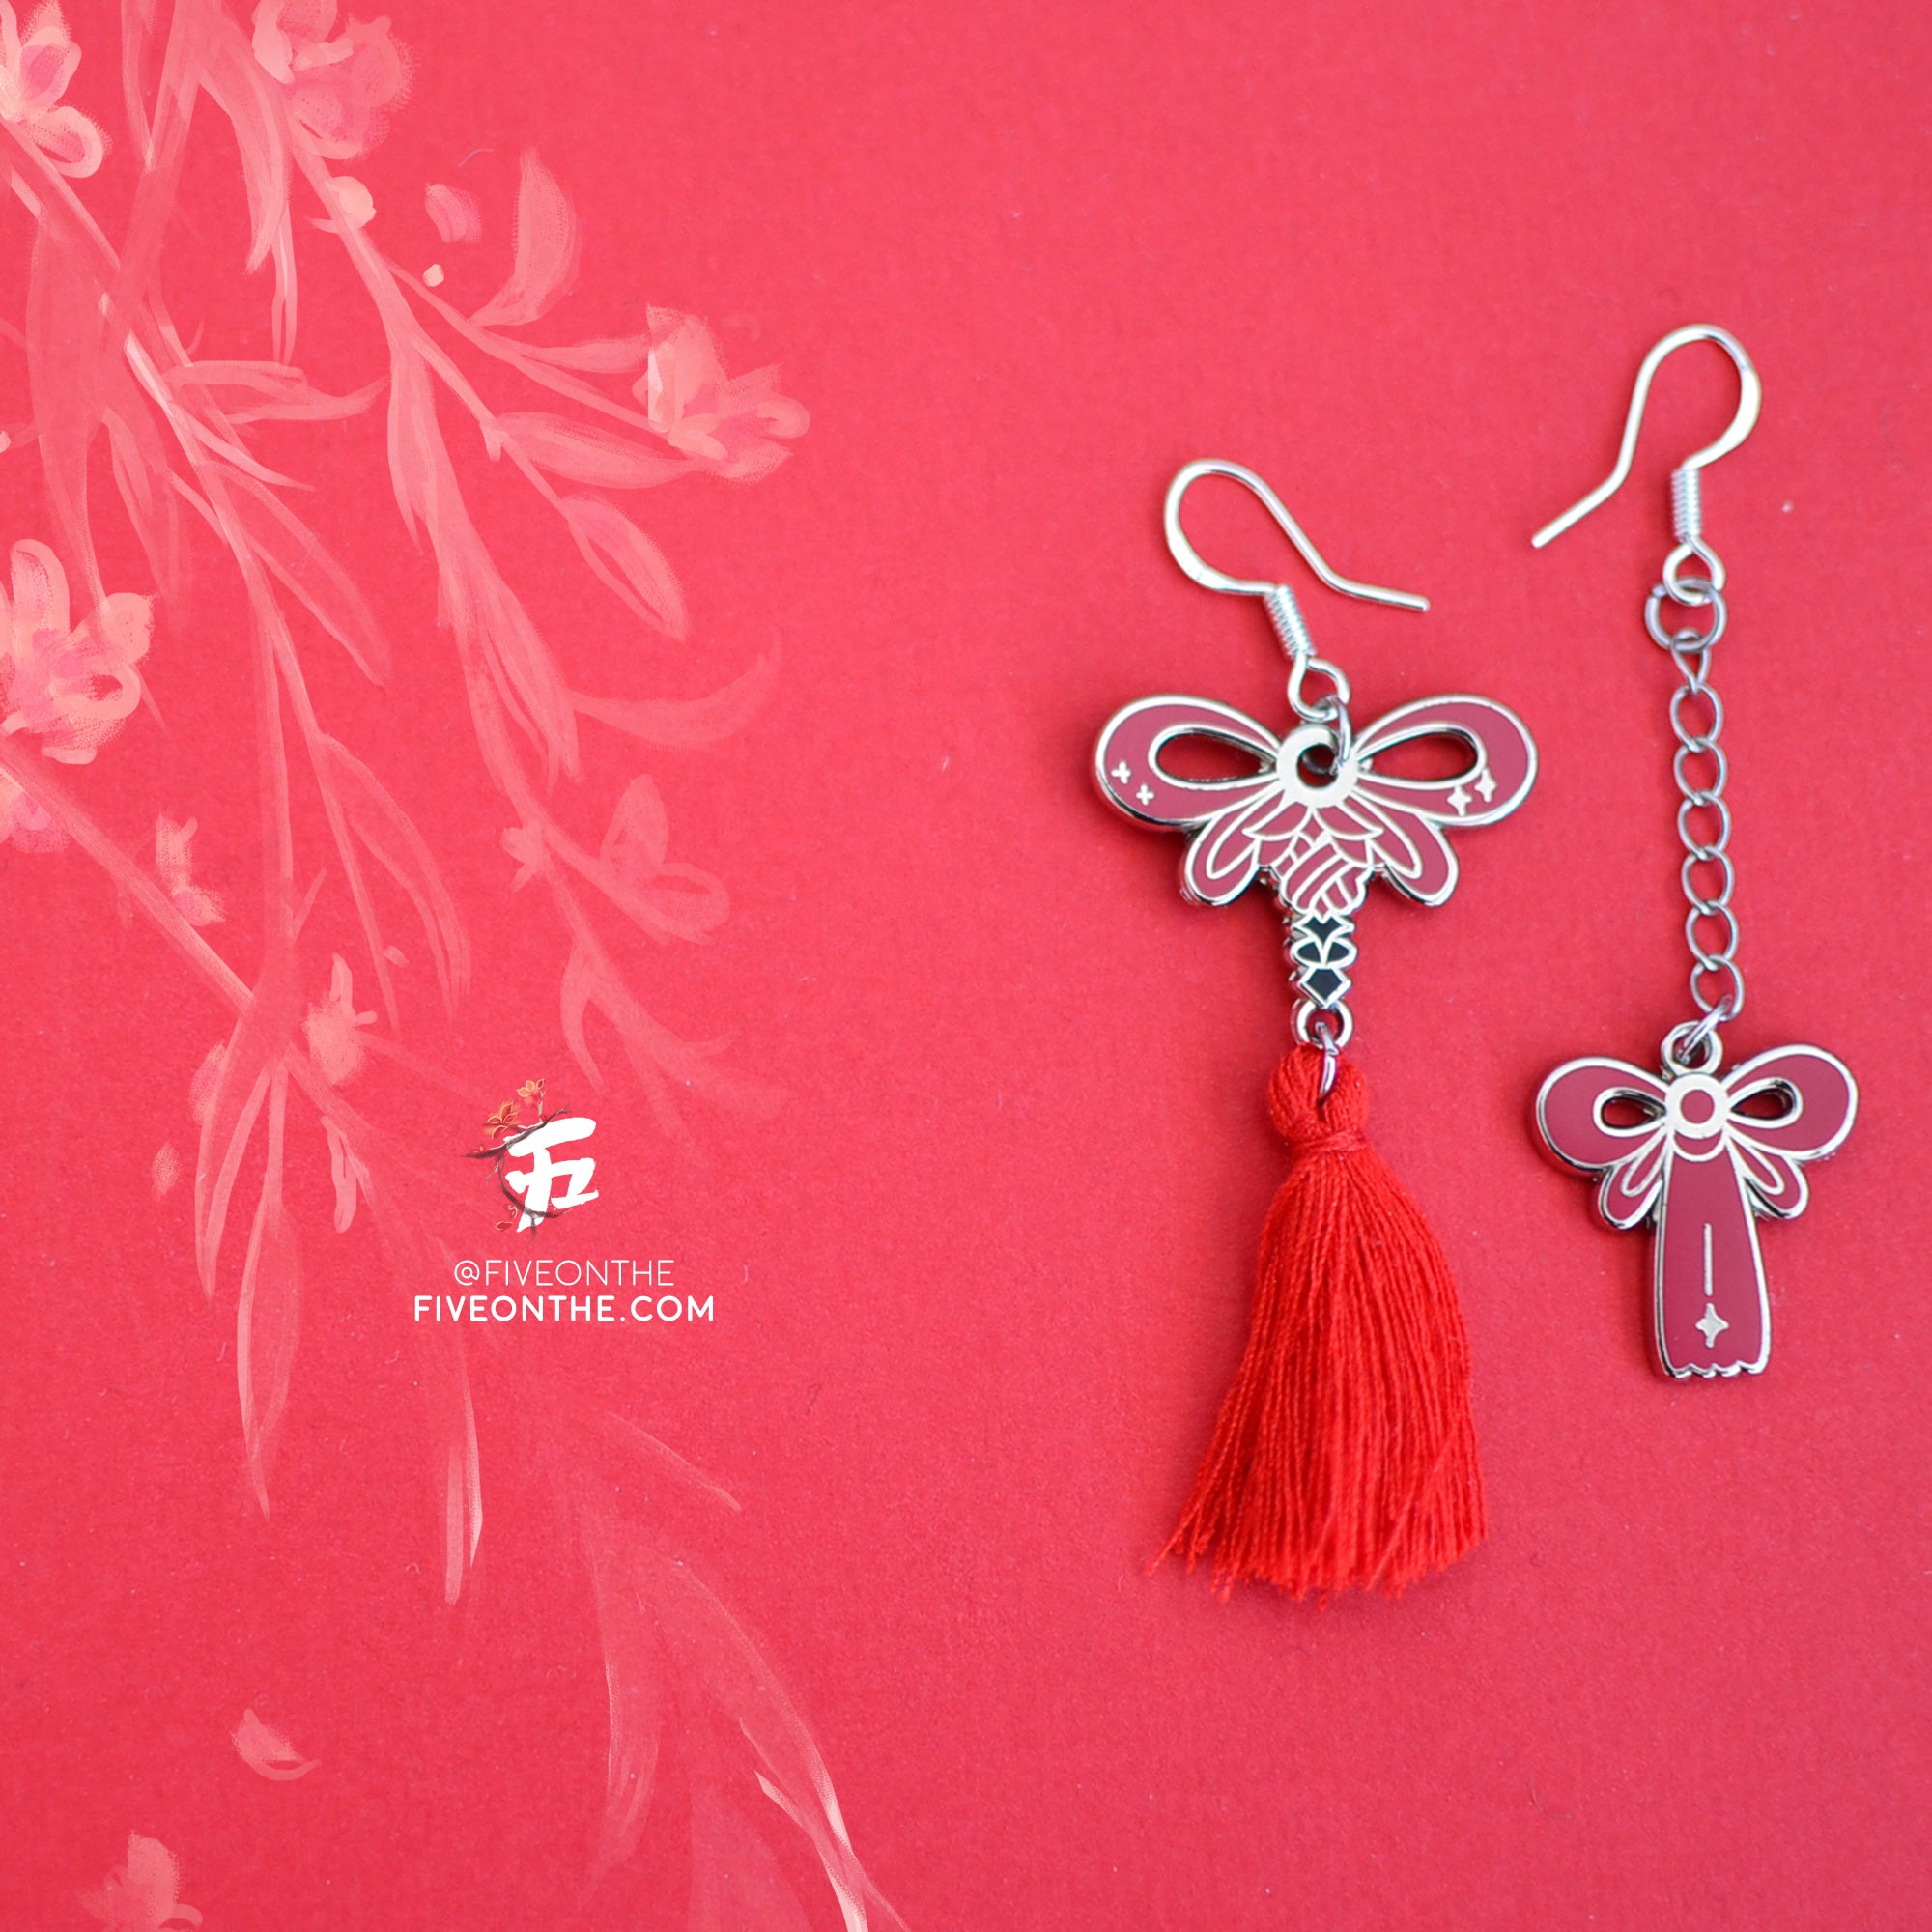 Ryumyaku Asymmetrical Earrings - 925 Sterling Silver Tassel Earrings ✦ FFXIV